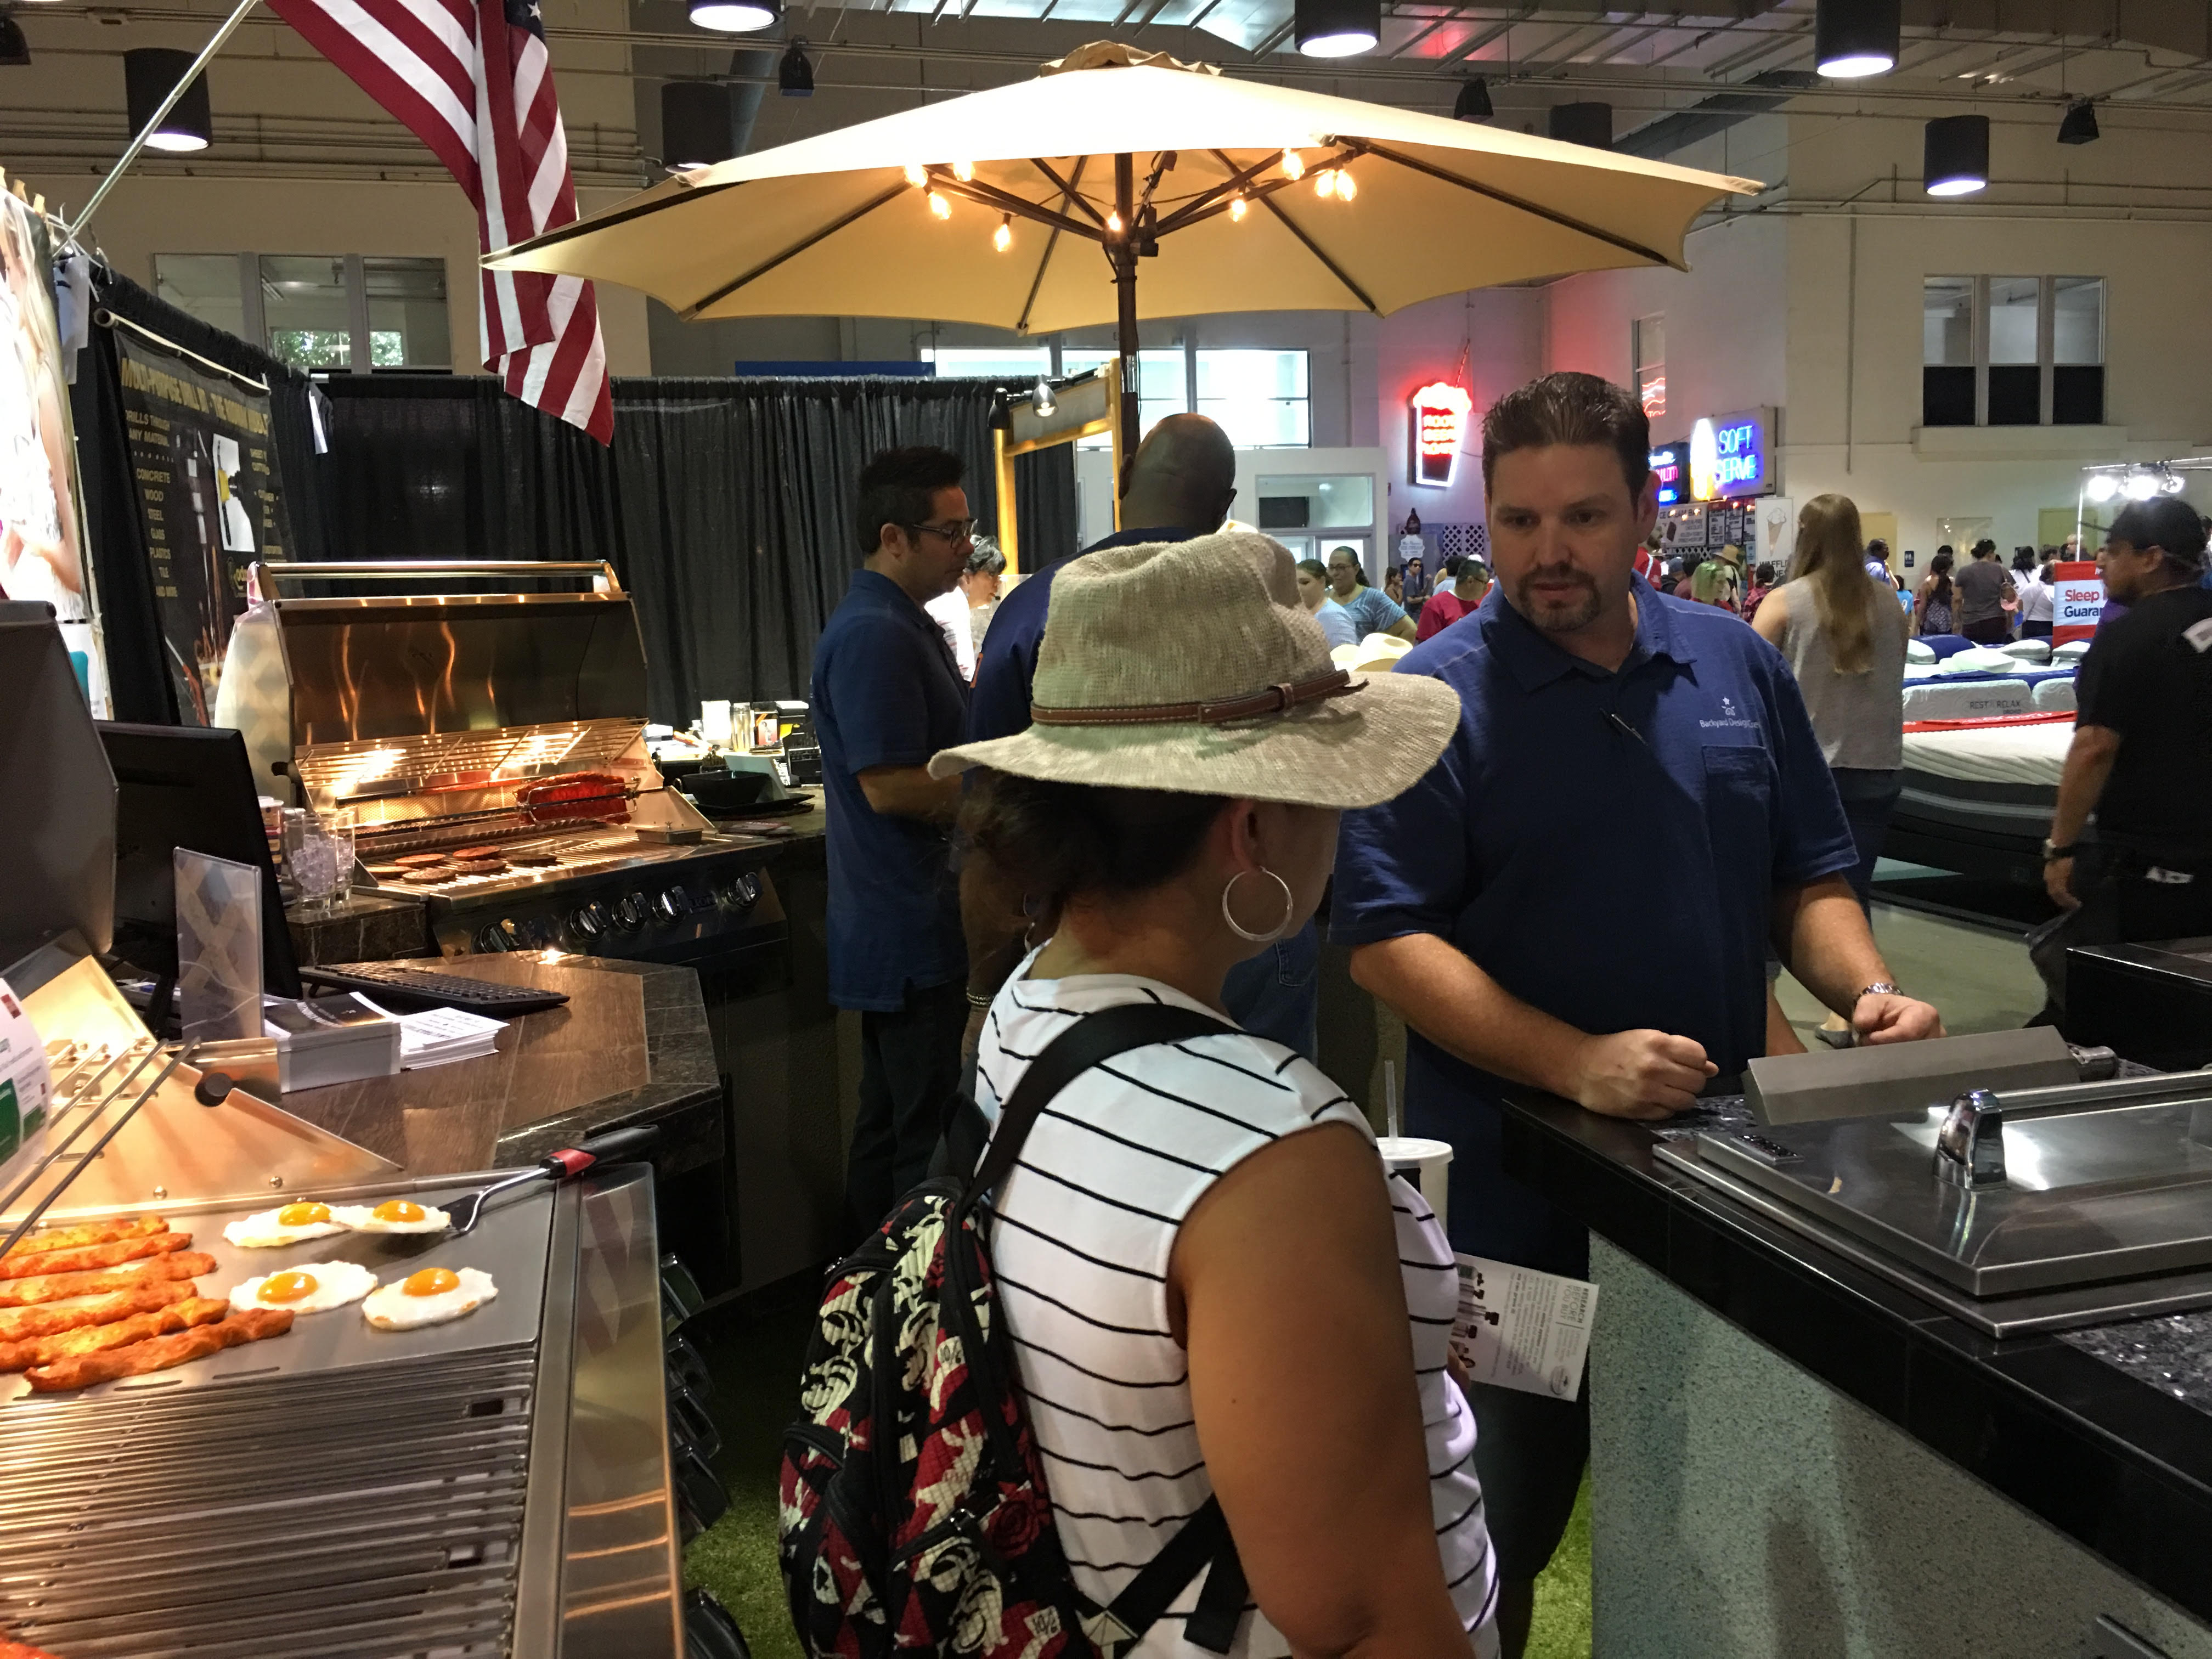 Great Deals on BBQ Islands, Grills, Spas & Swim Spas at the LA County Fair!